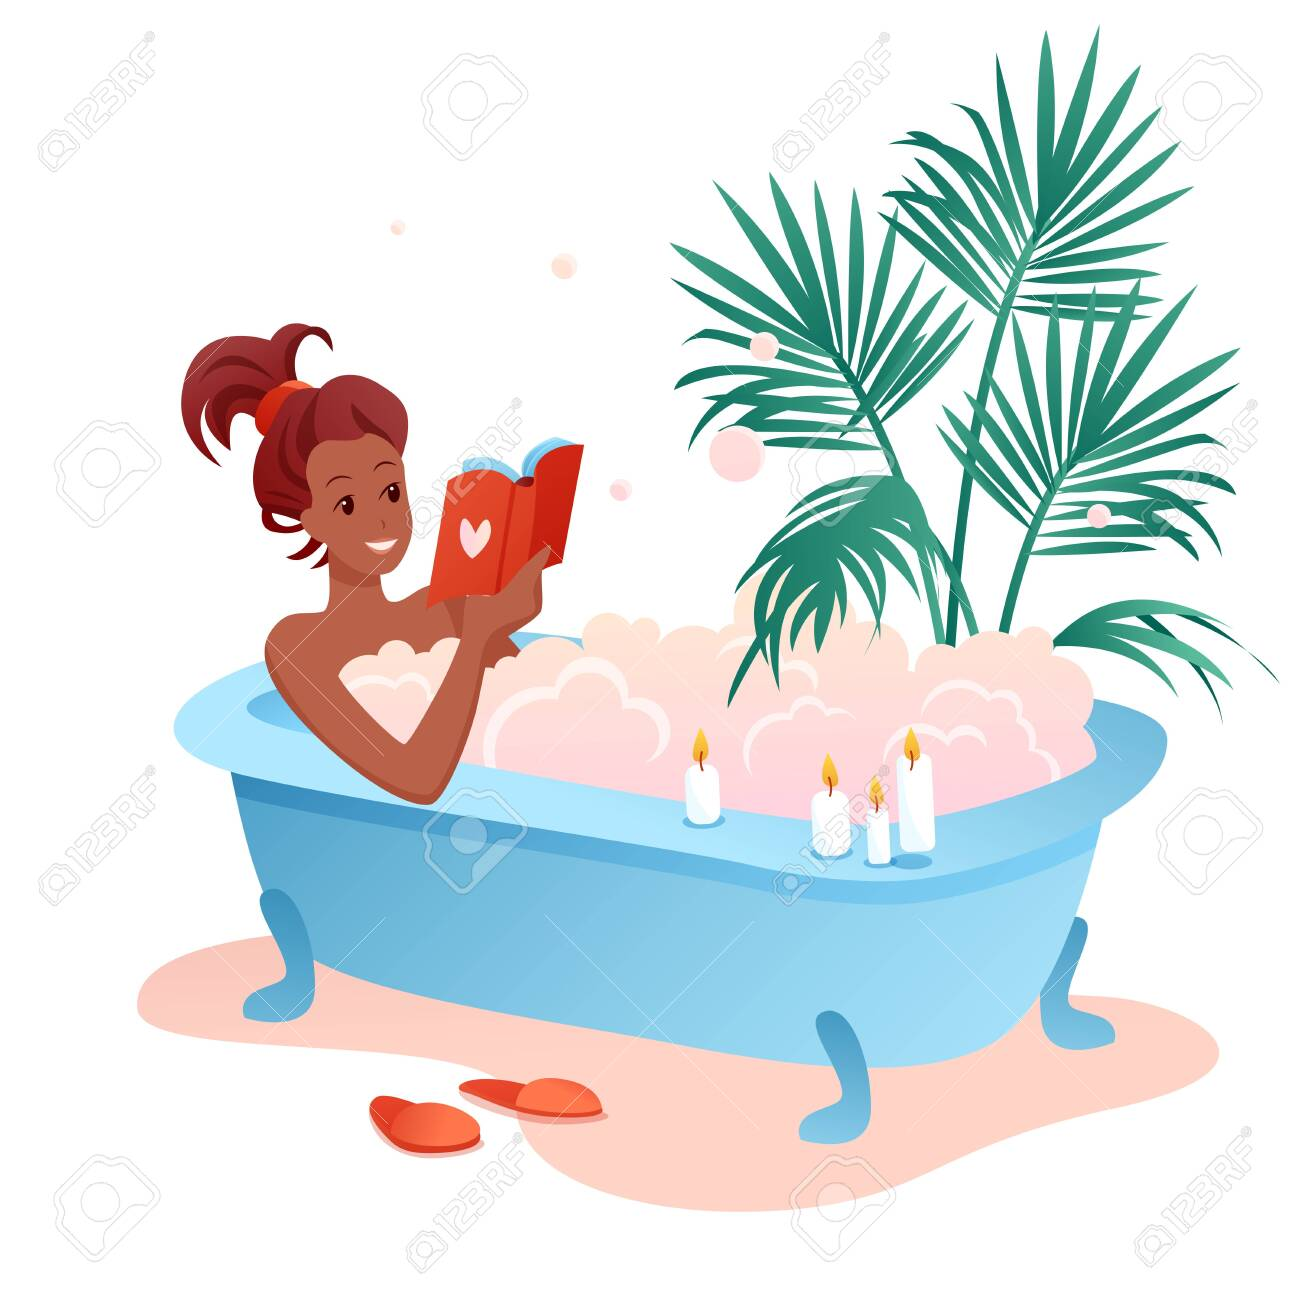 Enjoy bath time flat vector illustration. Cartoon young african woman character enjoying relaxing bubble foam bath, girl reading book in bathroom isolated on white - 151947933